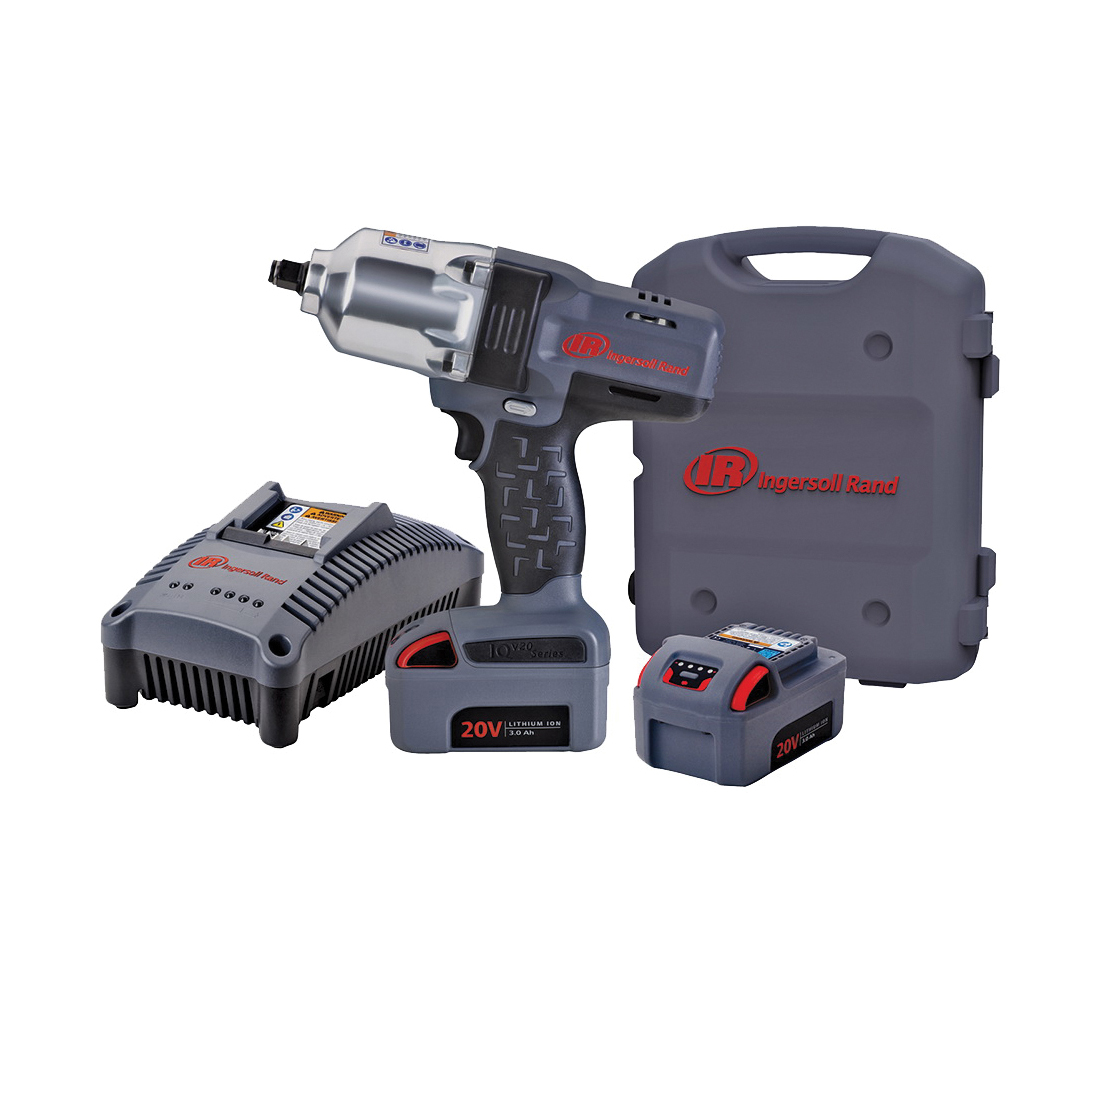 Picture of Ingersoll Rand W7150-K2 Impact Wrench Kit, Kit, 20 V Battery, 3 Ah, 1/2 in Drive, Square Drive, 780 ft-lb